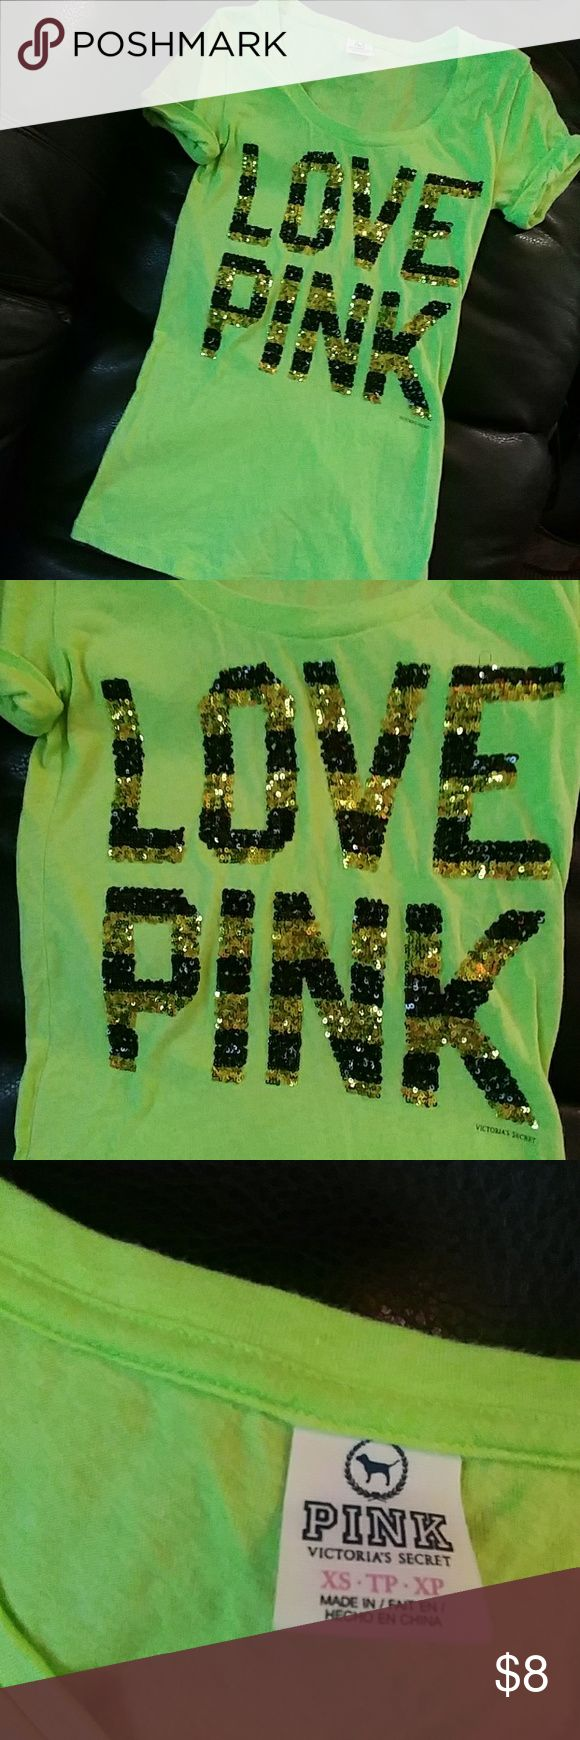 """XS Victoria's Secret PINK lime ss t-shirt Sparkled sequence of black and gold and lime green scoop neck shirt marked extra small for tall Gal.  28"""" bust.  25"""" long. Victoria's Secret Pink Tops Tees - Short Sleeve"""